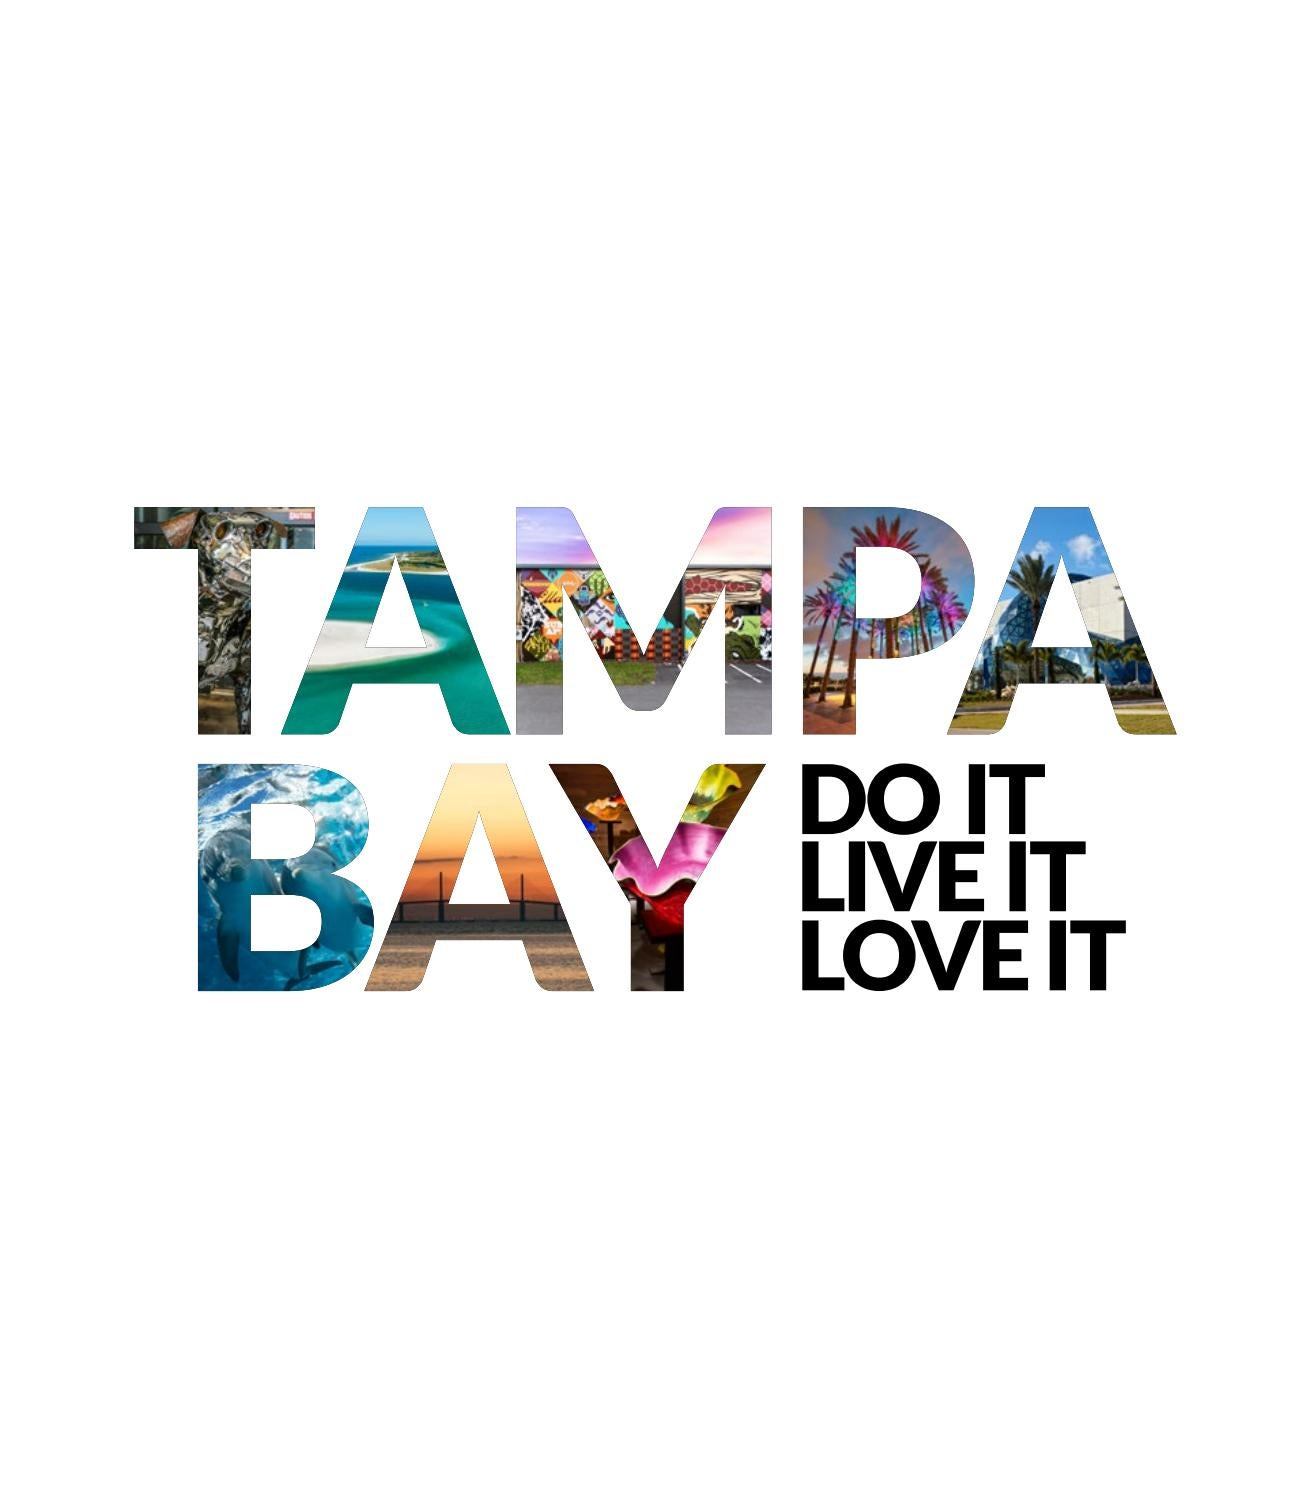 Tampa Bay do it live it love it vol 1 by Sven Boermeester issuu